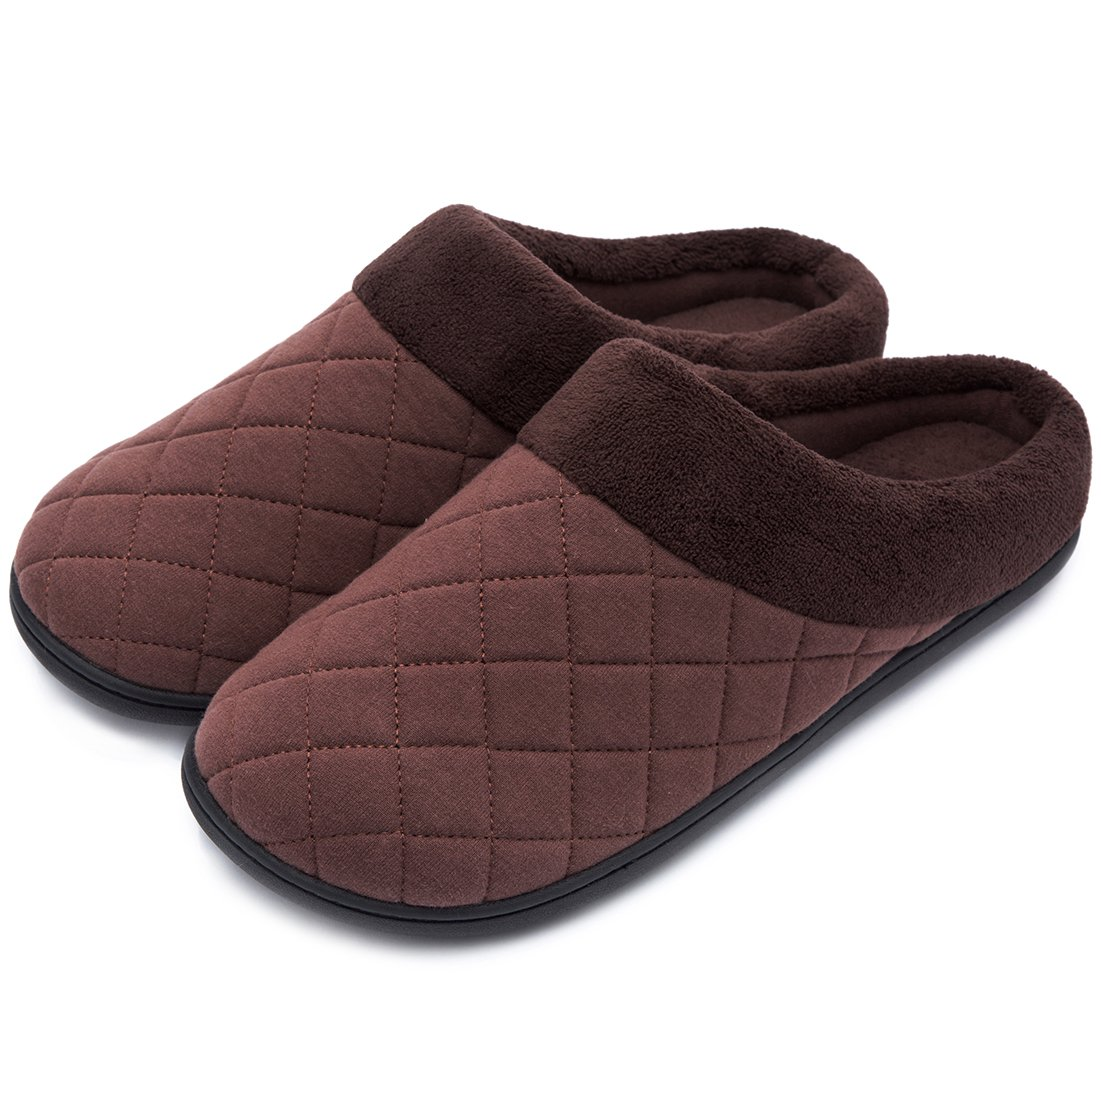 Men's Comfort Quilted Memory Foam Fleece Lining House Slippers Slip On Clog House Shoes (Large / 11-12 D(M) US, Coffee)